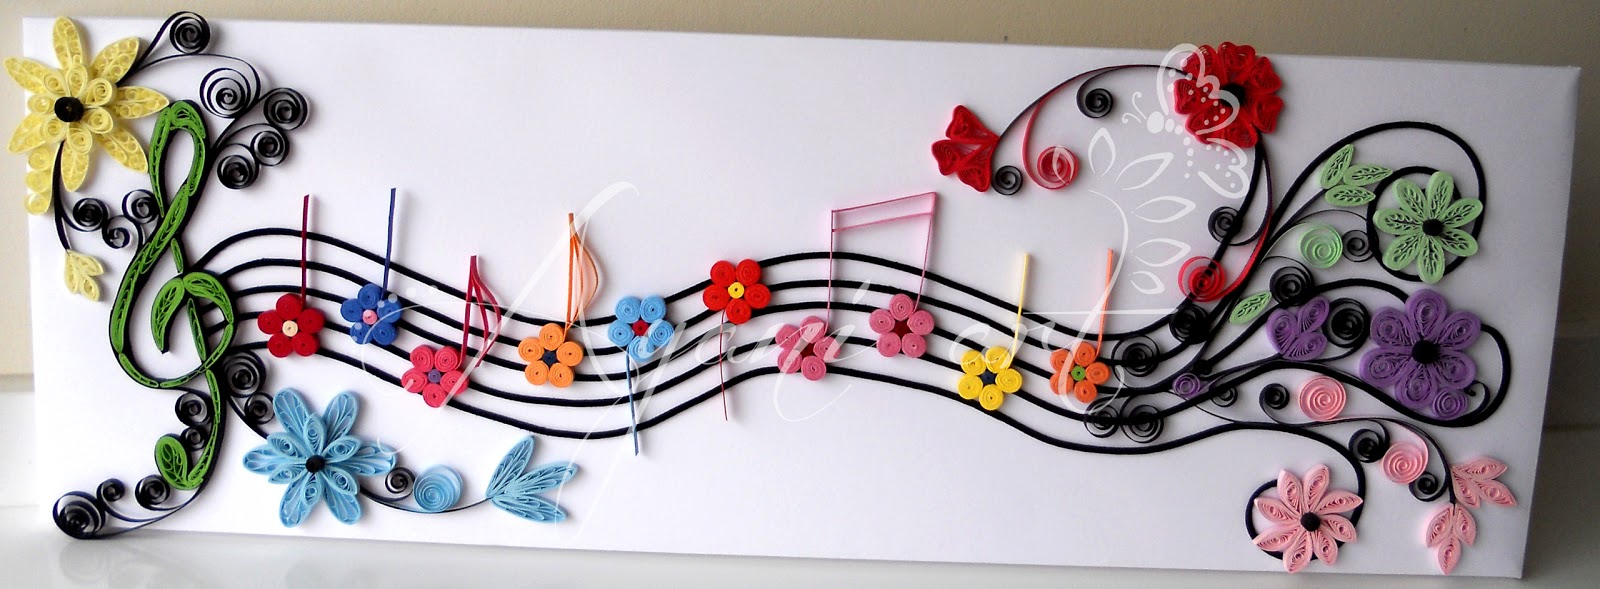 HD wallpapers kids birthday card craft ideas